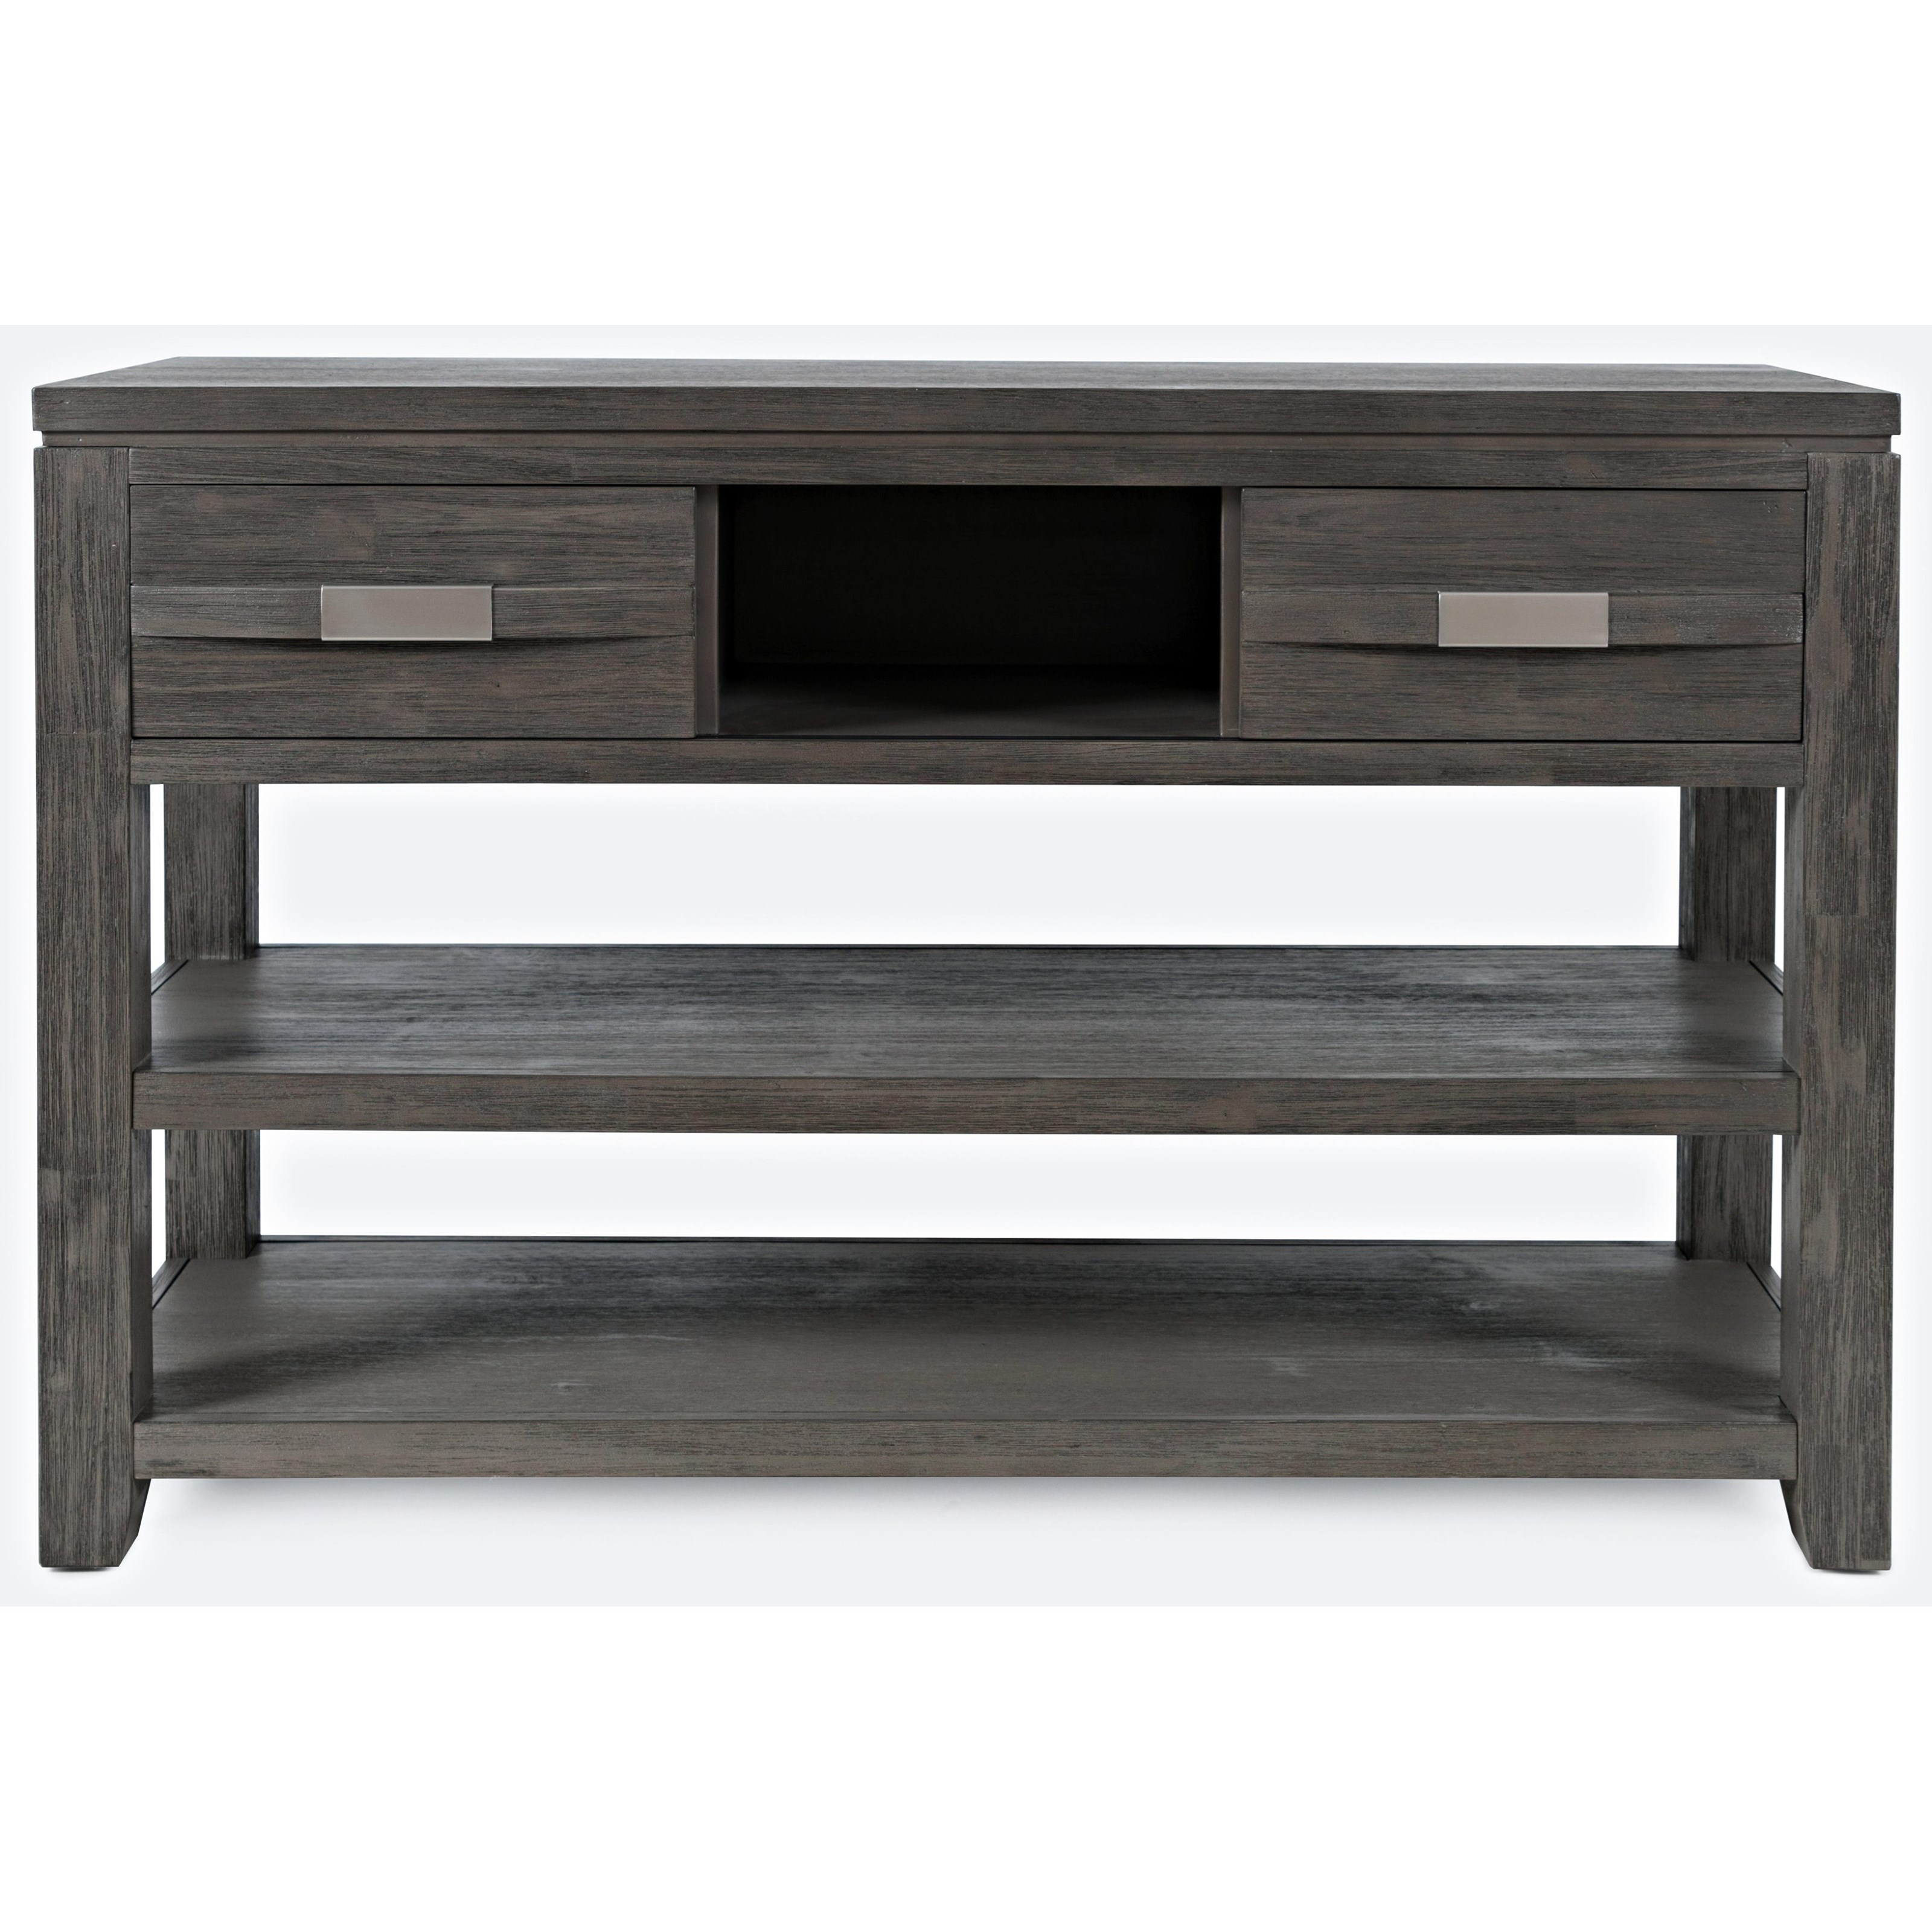 Altamonte  Sofa Table by Jofran at Zak's Home